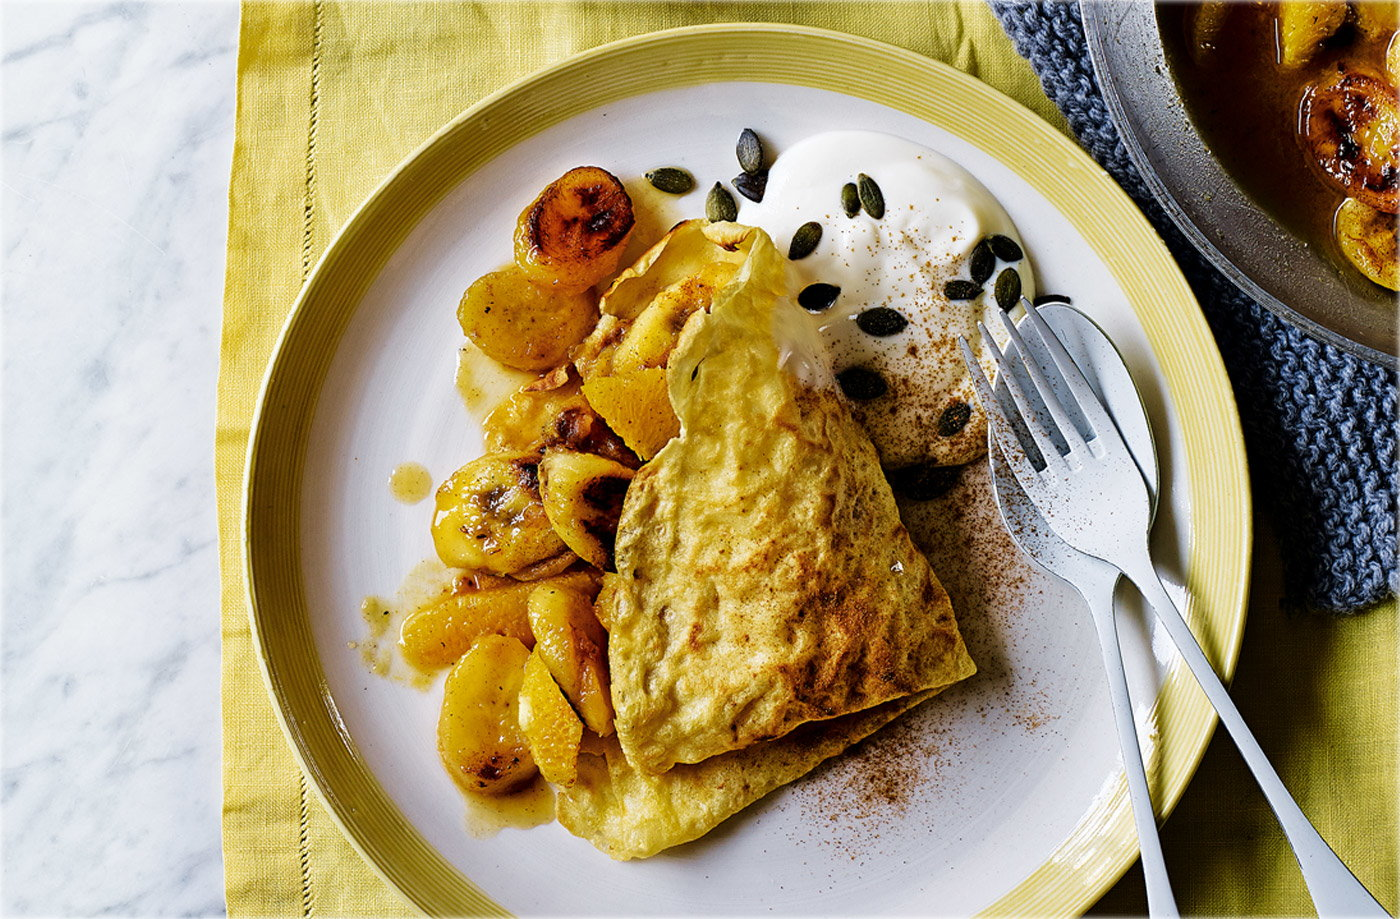 French crêpes with caramelised bananas and oranges recipe